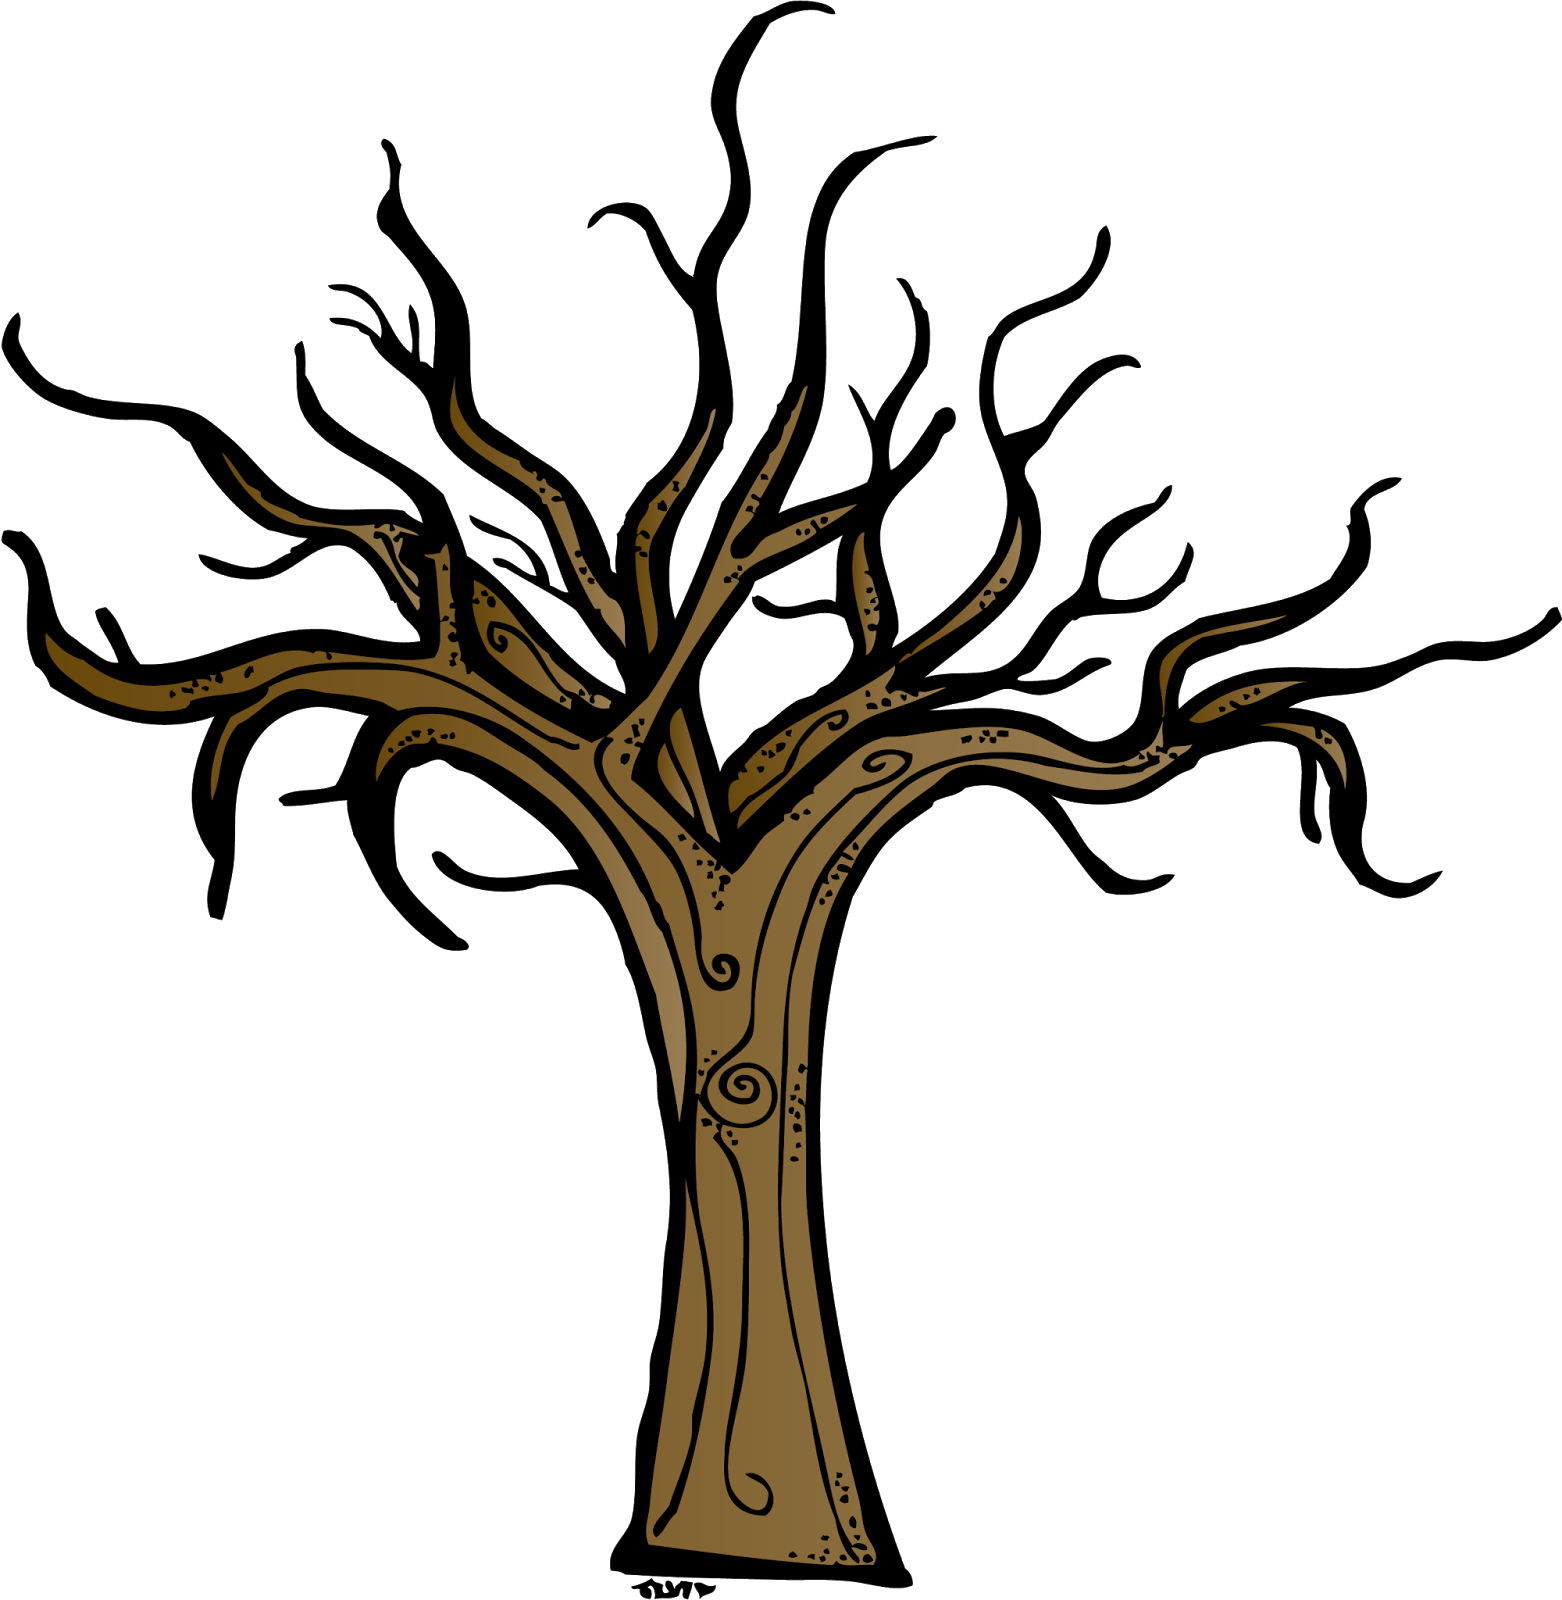 Dead Tree Trunk Clip Art Tree Trunk Clipart Png Transparent Cartoon Jing Fm With tenor, maker of gif keyboard, add popular tree trunk animated gifs to your conversations. dead tree trunk clip art tree trunk